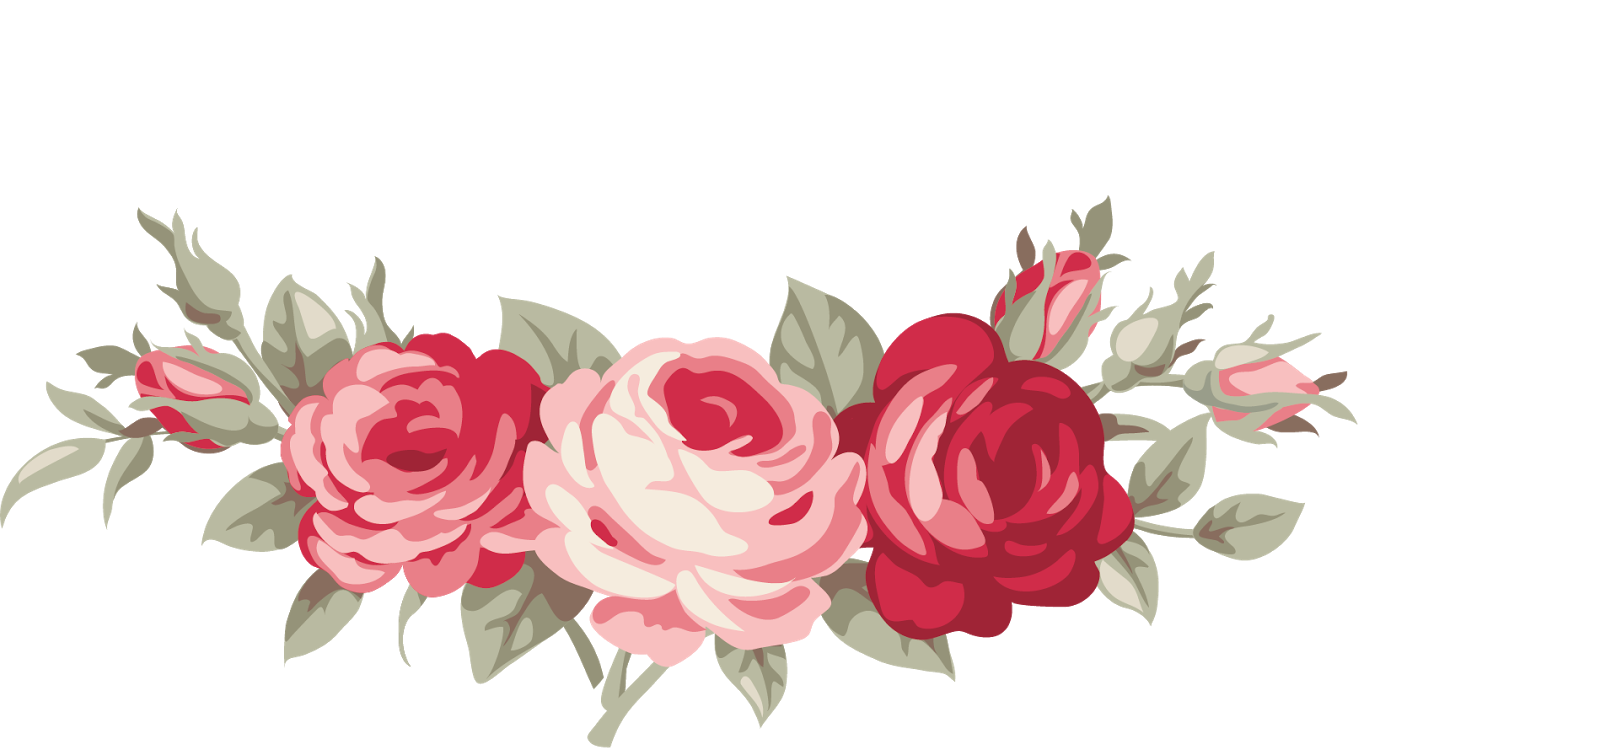 Pin by on suas. Floral png vector free stock